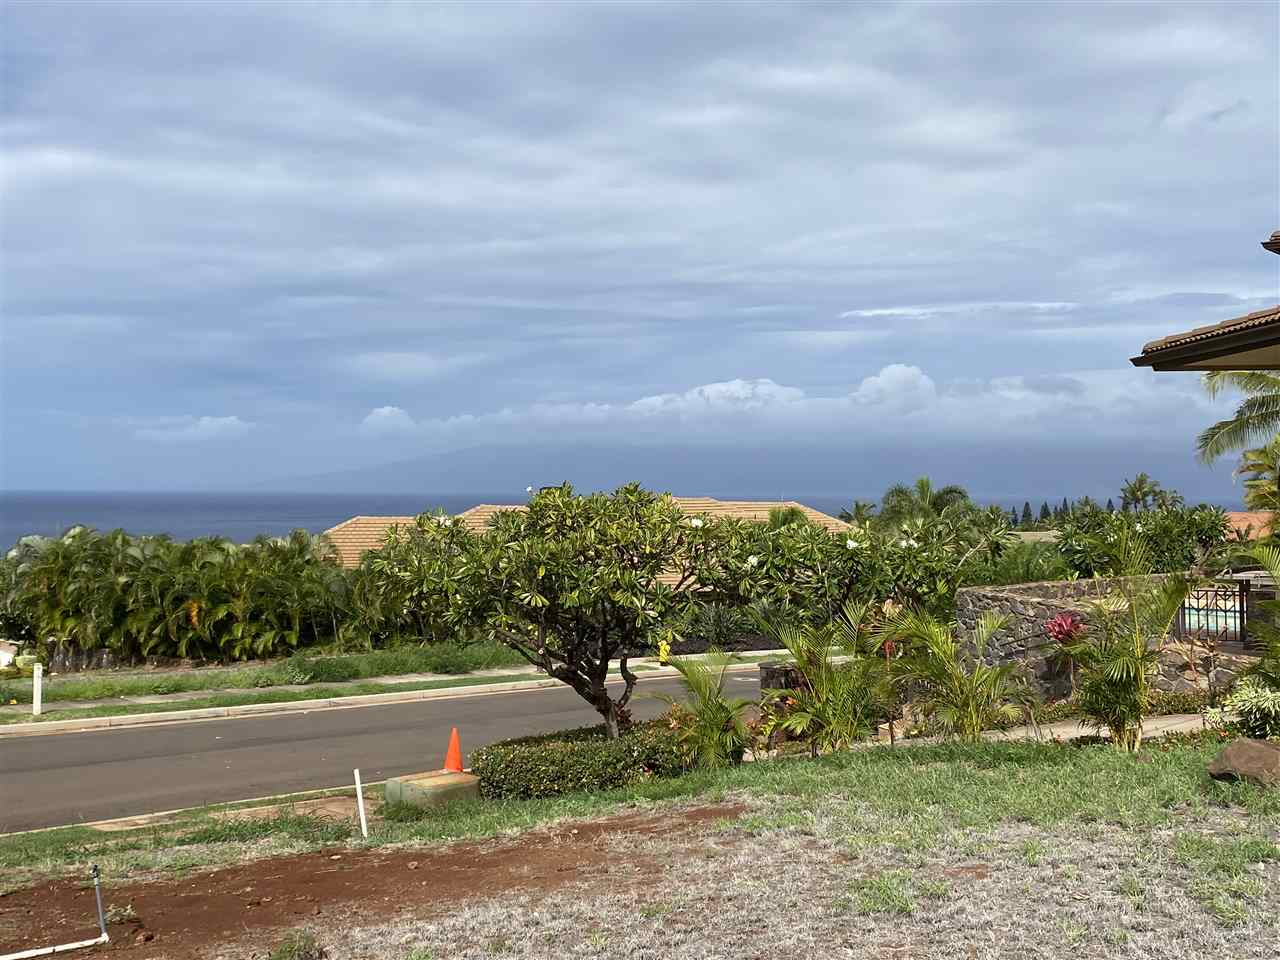 371 Kului Way in Ke Alii